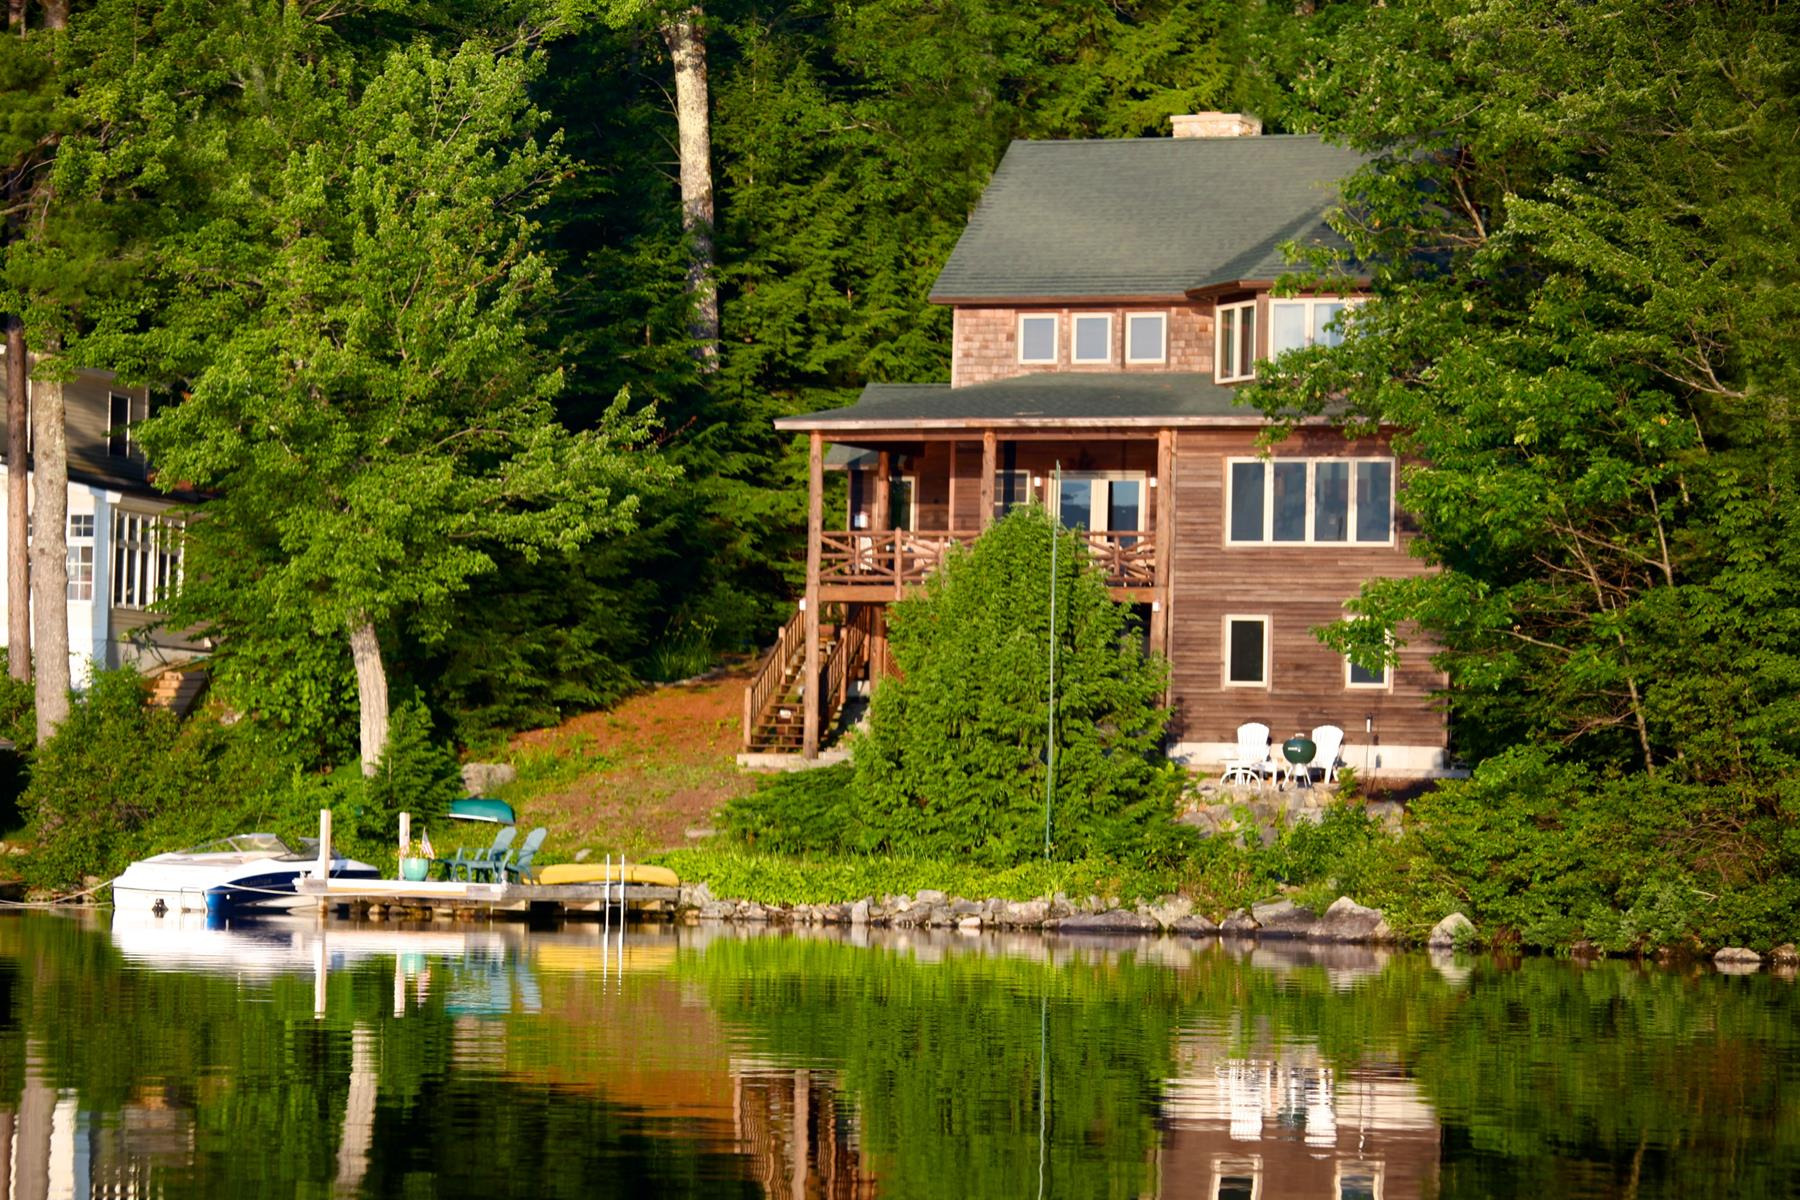 Single Family Home for Sale at 199 Bay Point, Newbury 199 Bay Point Rd Newbury, New Hampshire 03255 United States